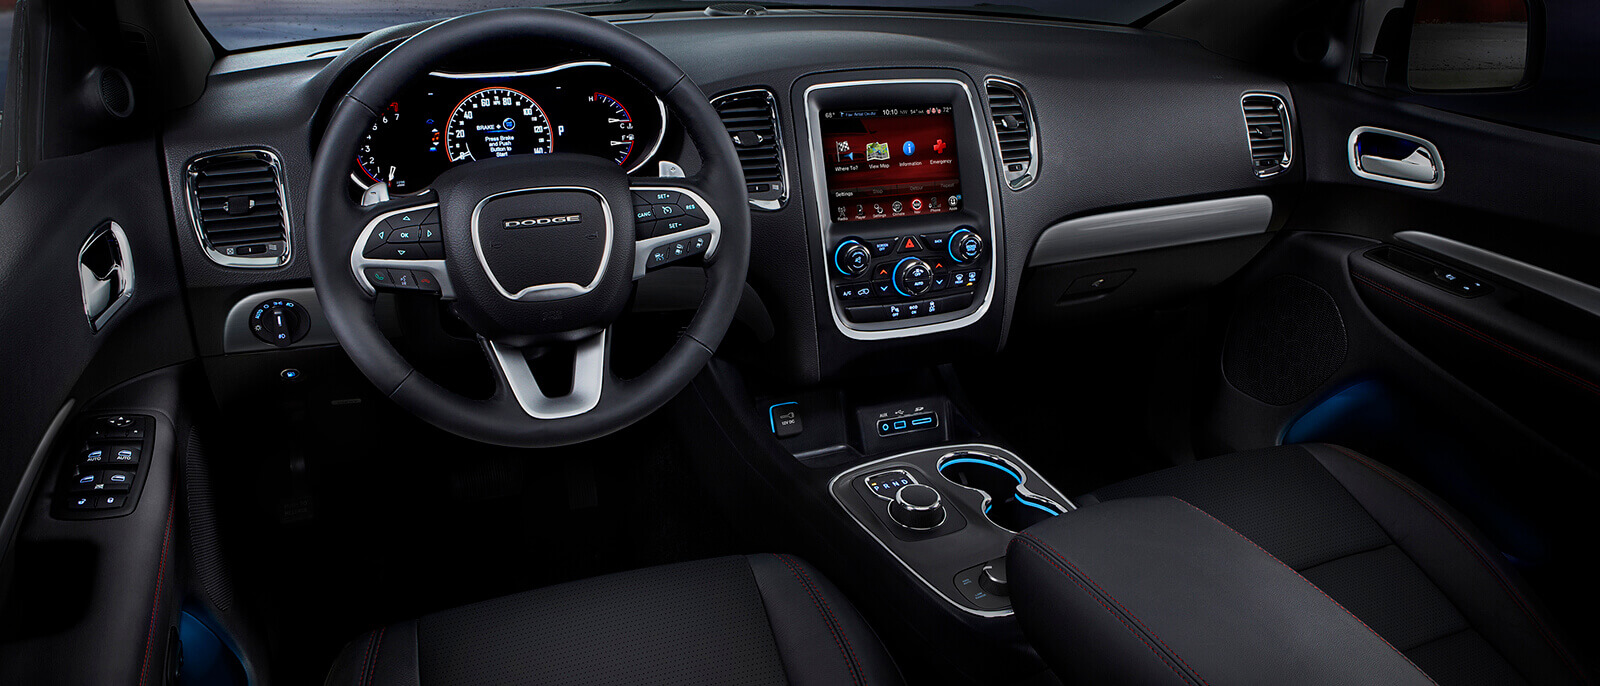 meet the spacious and powerful 2017 dodge durango knight dodge. Black Bedroom Furniture Sets. Home Design Ideas